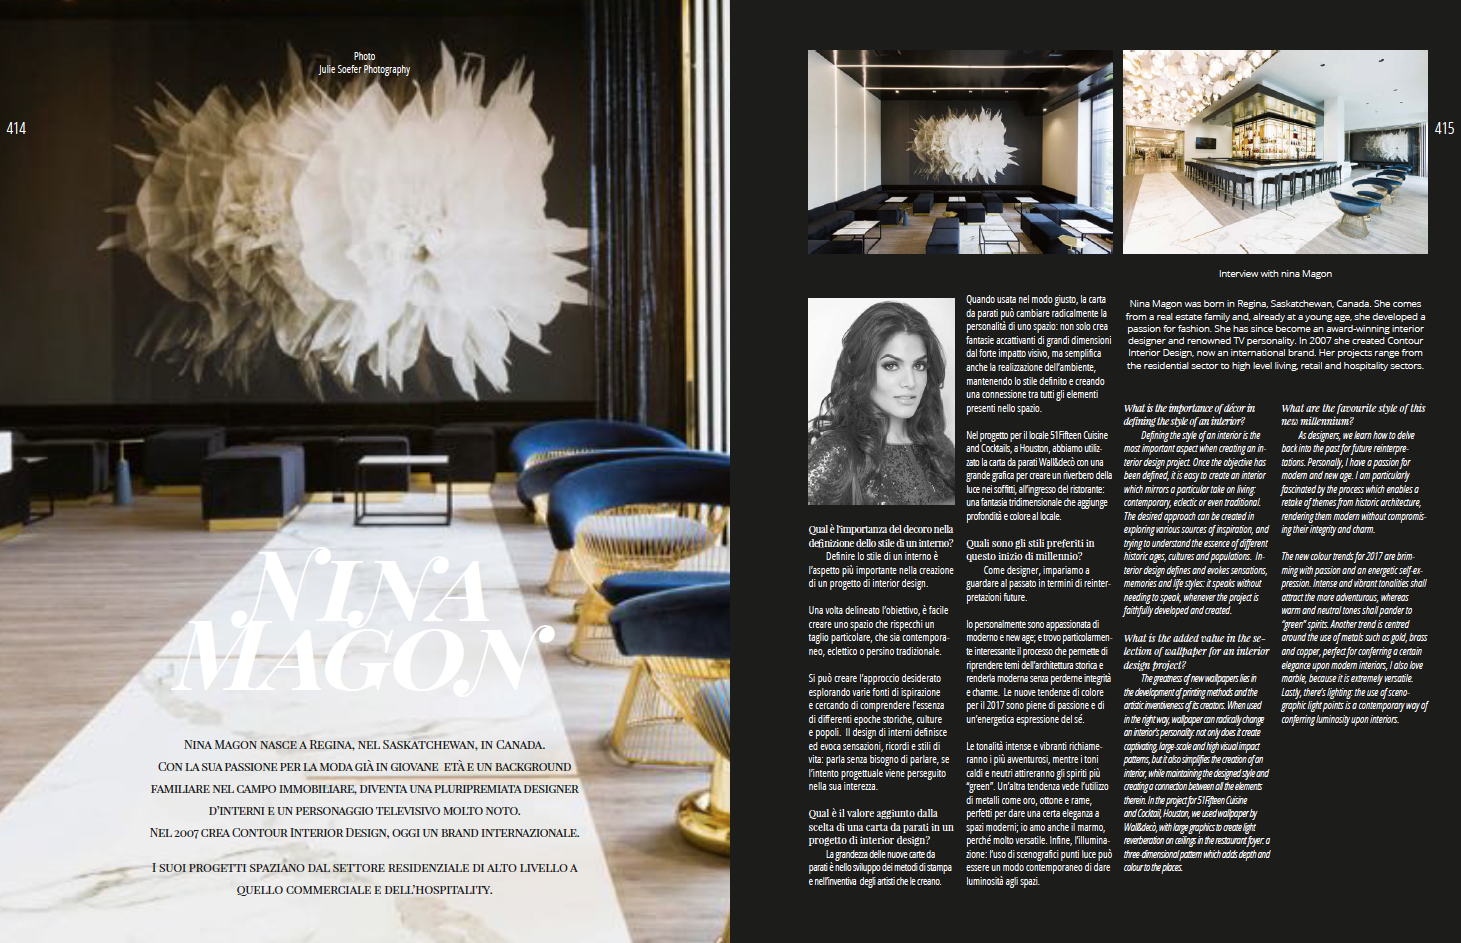 Wall deco contemporary wallpaper magazine interview - What does it take to be an interior designer ...